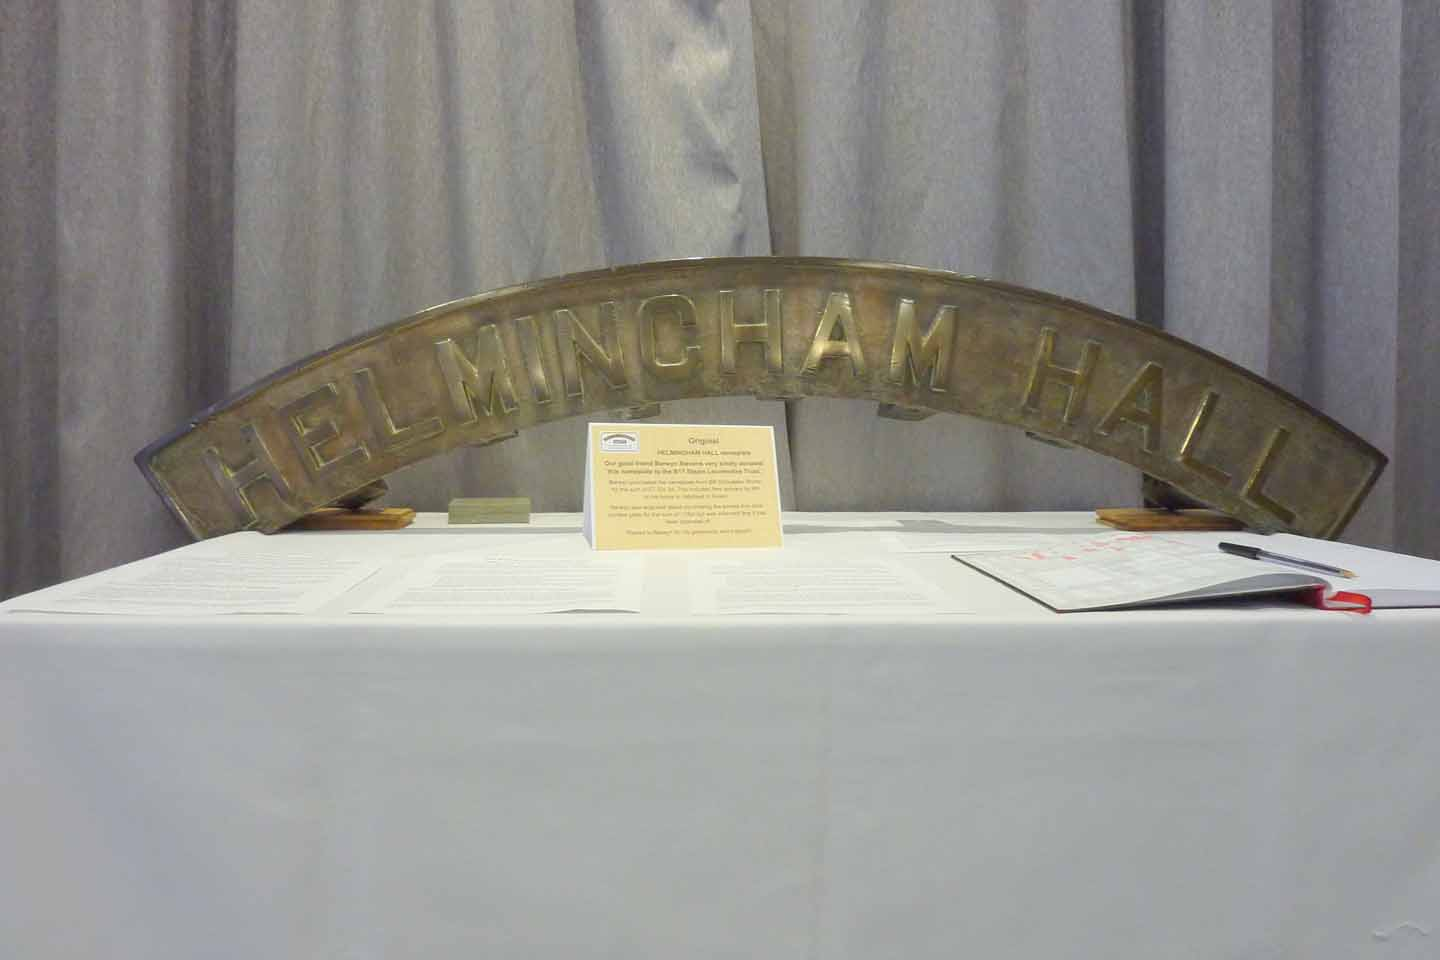 Helmingham Hall nameplate reduced